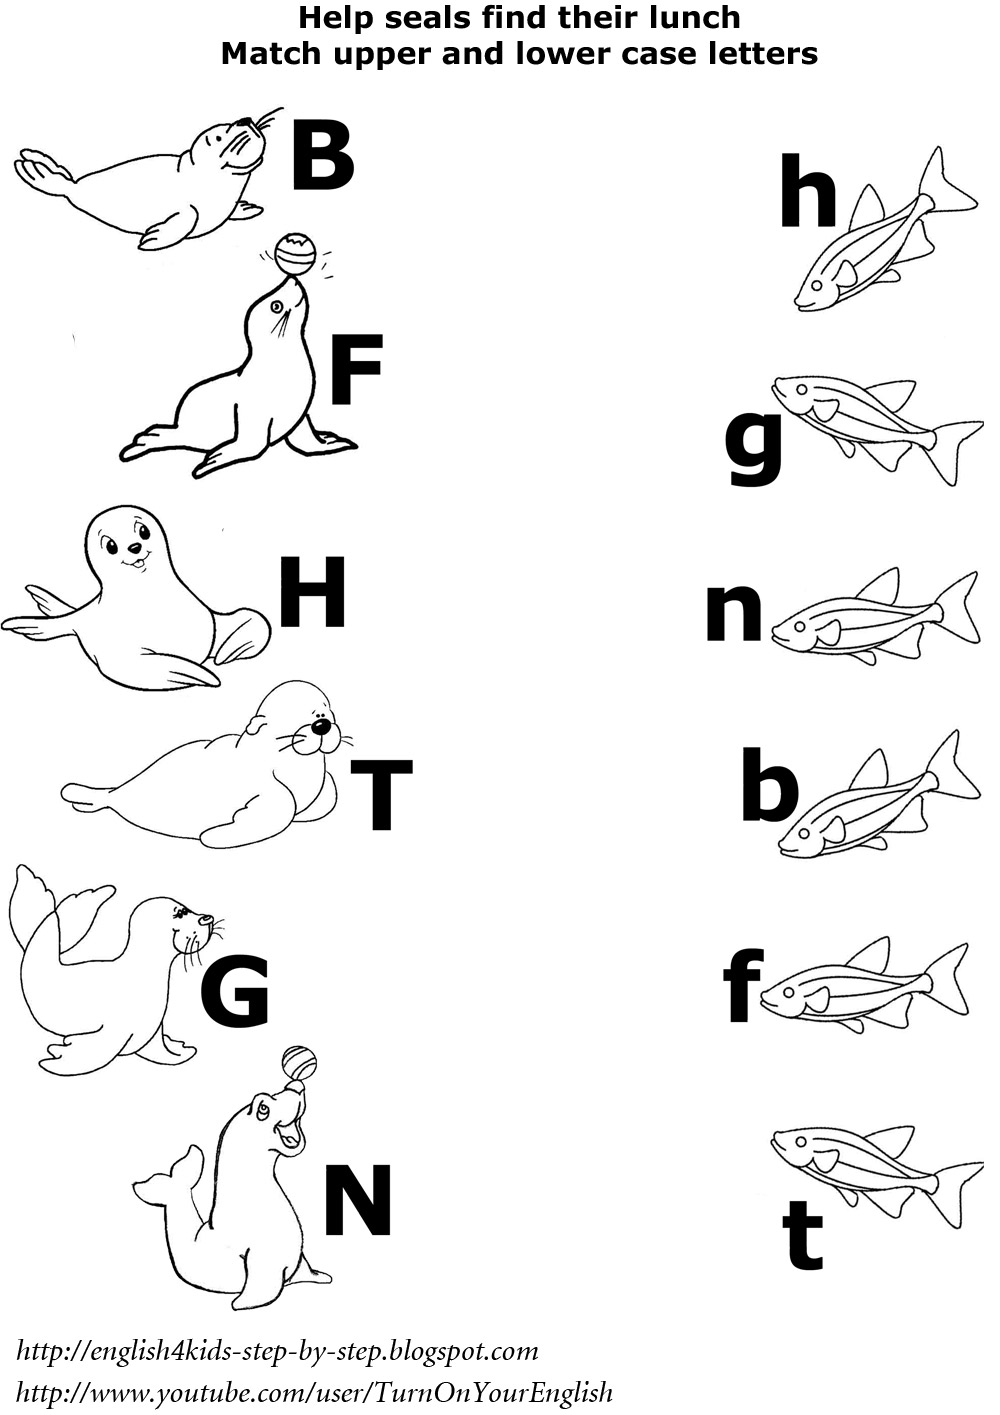 arctic animals coloring pages for preschoolers 13 best images of animal preschool matching worksheet pages coloring arctic for animals preschoolers